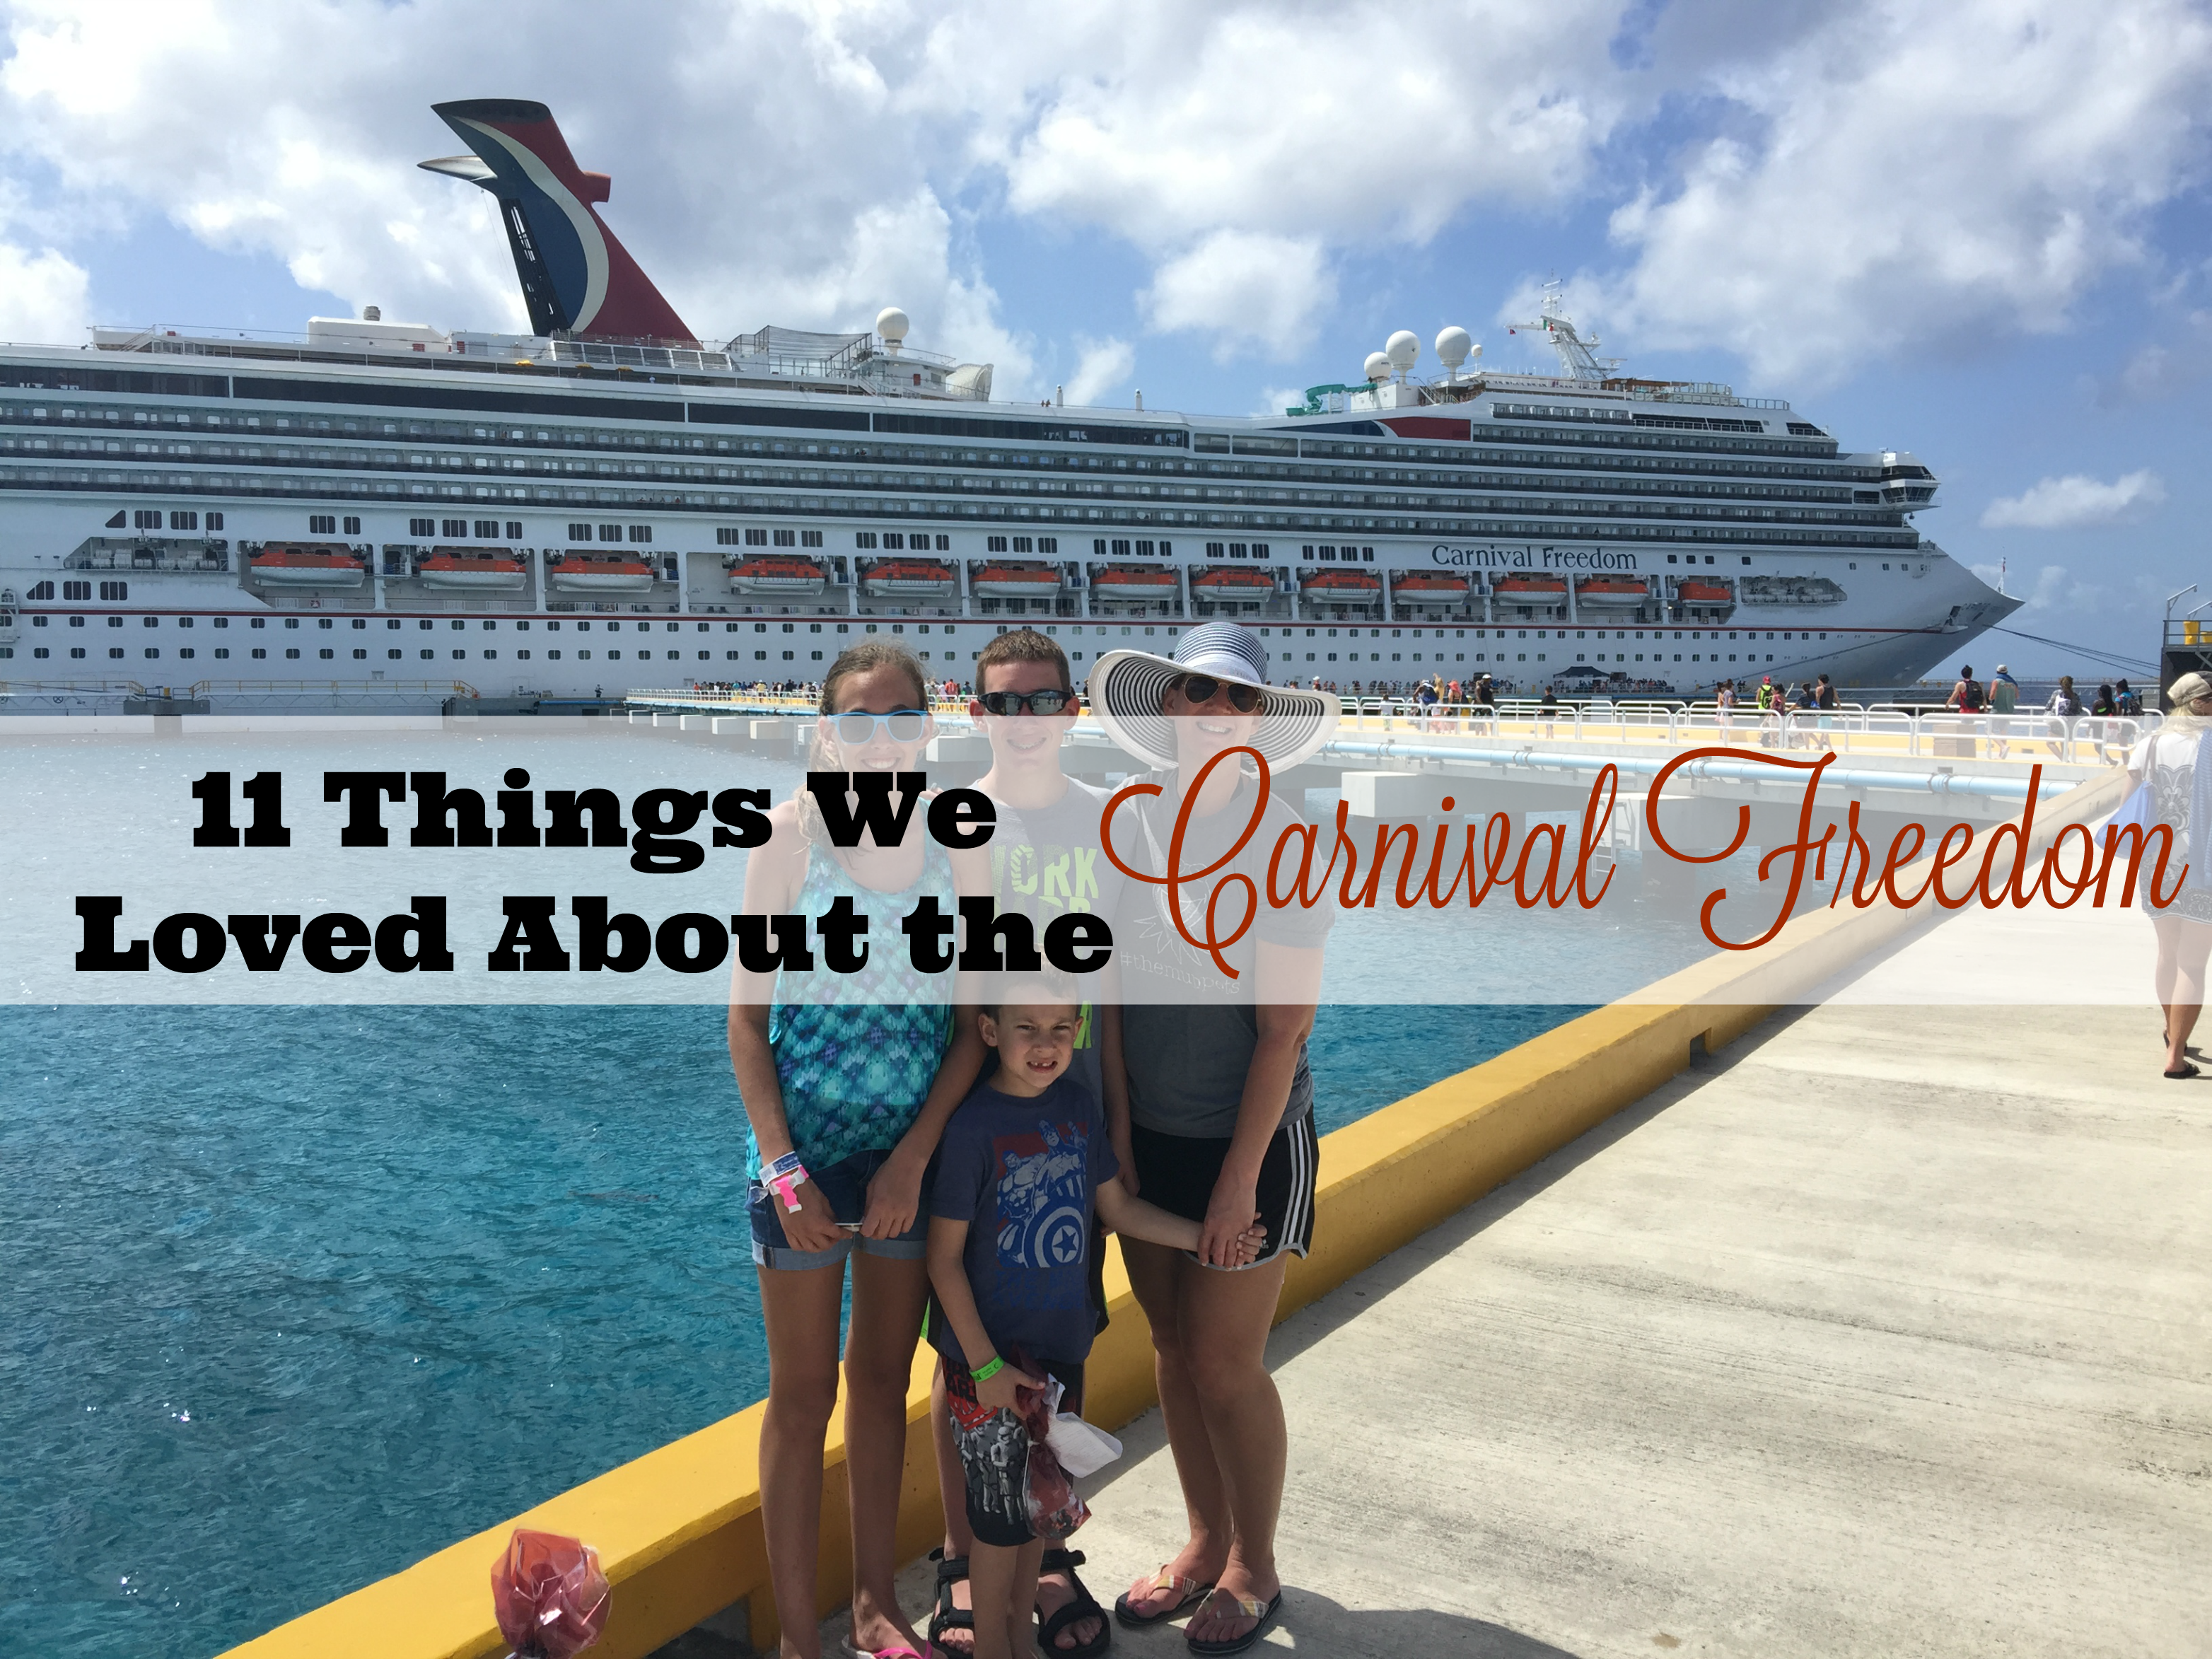 11 Things We Loved About The Carnival Freedom